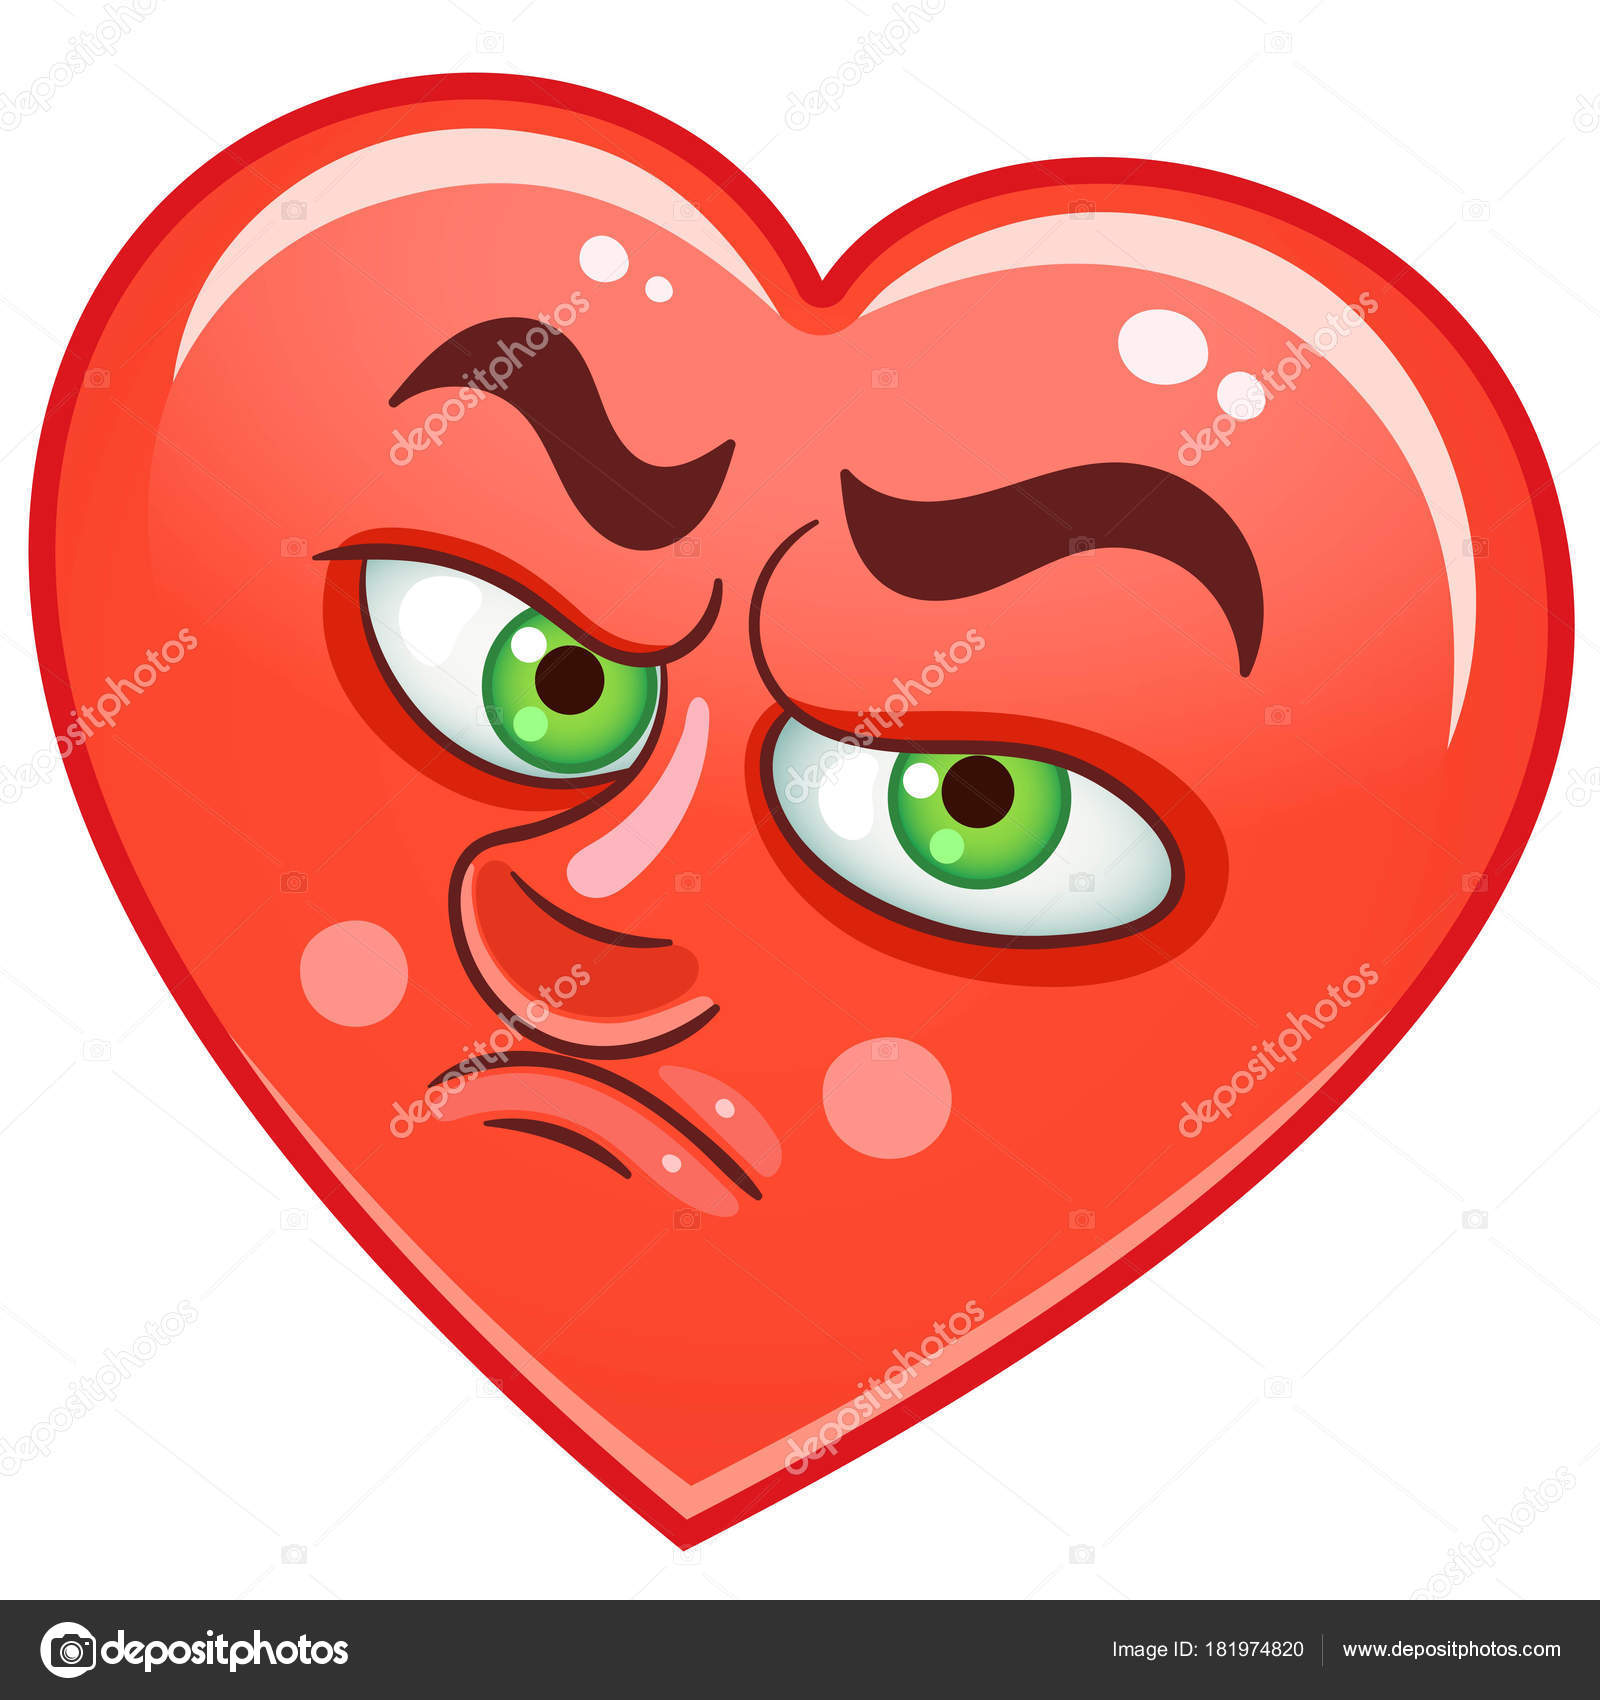 Heart Emoticons Smiley Emoji Stock Vector Sybirko 181974820